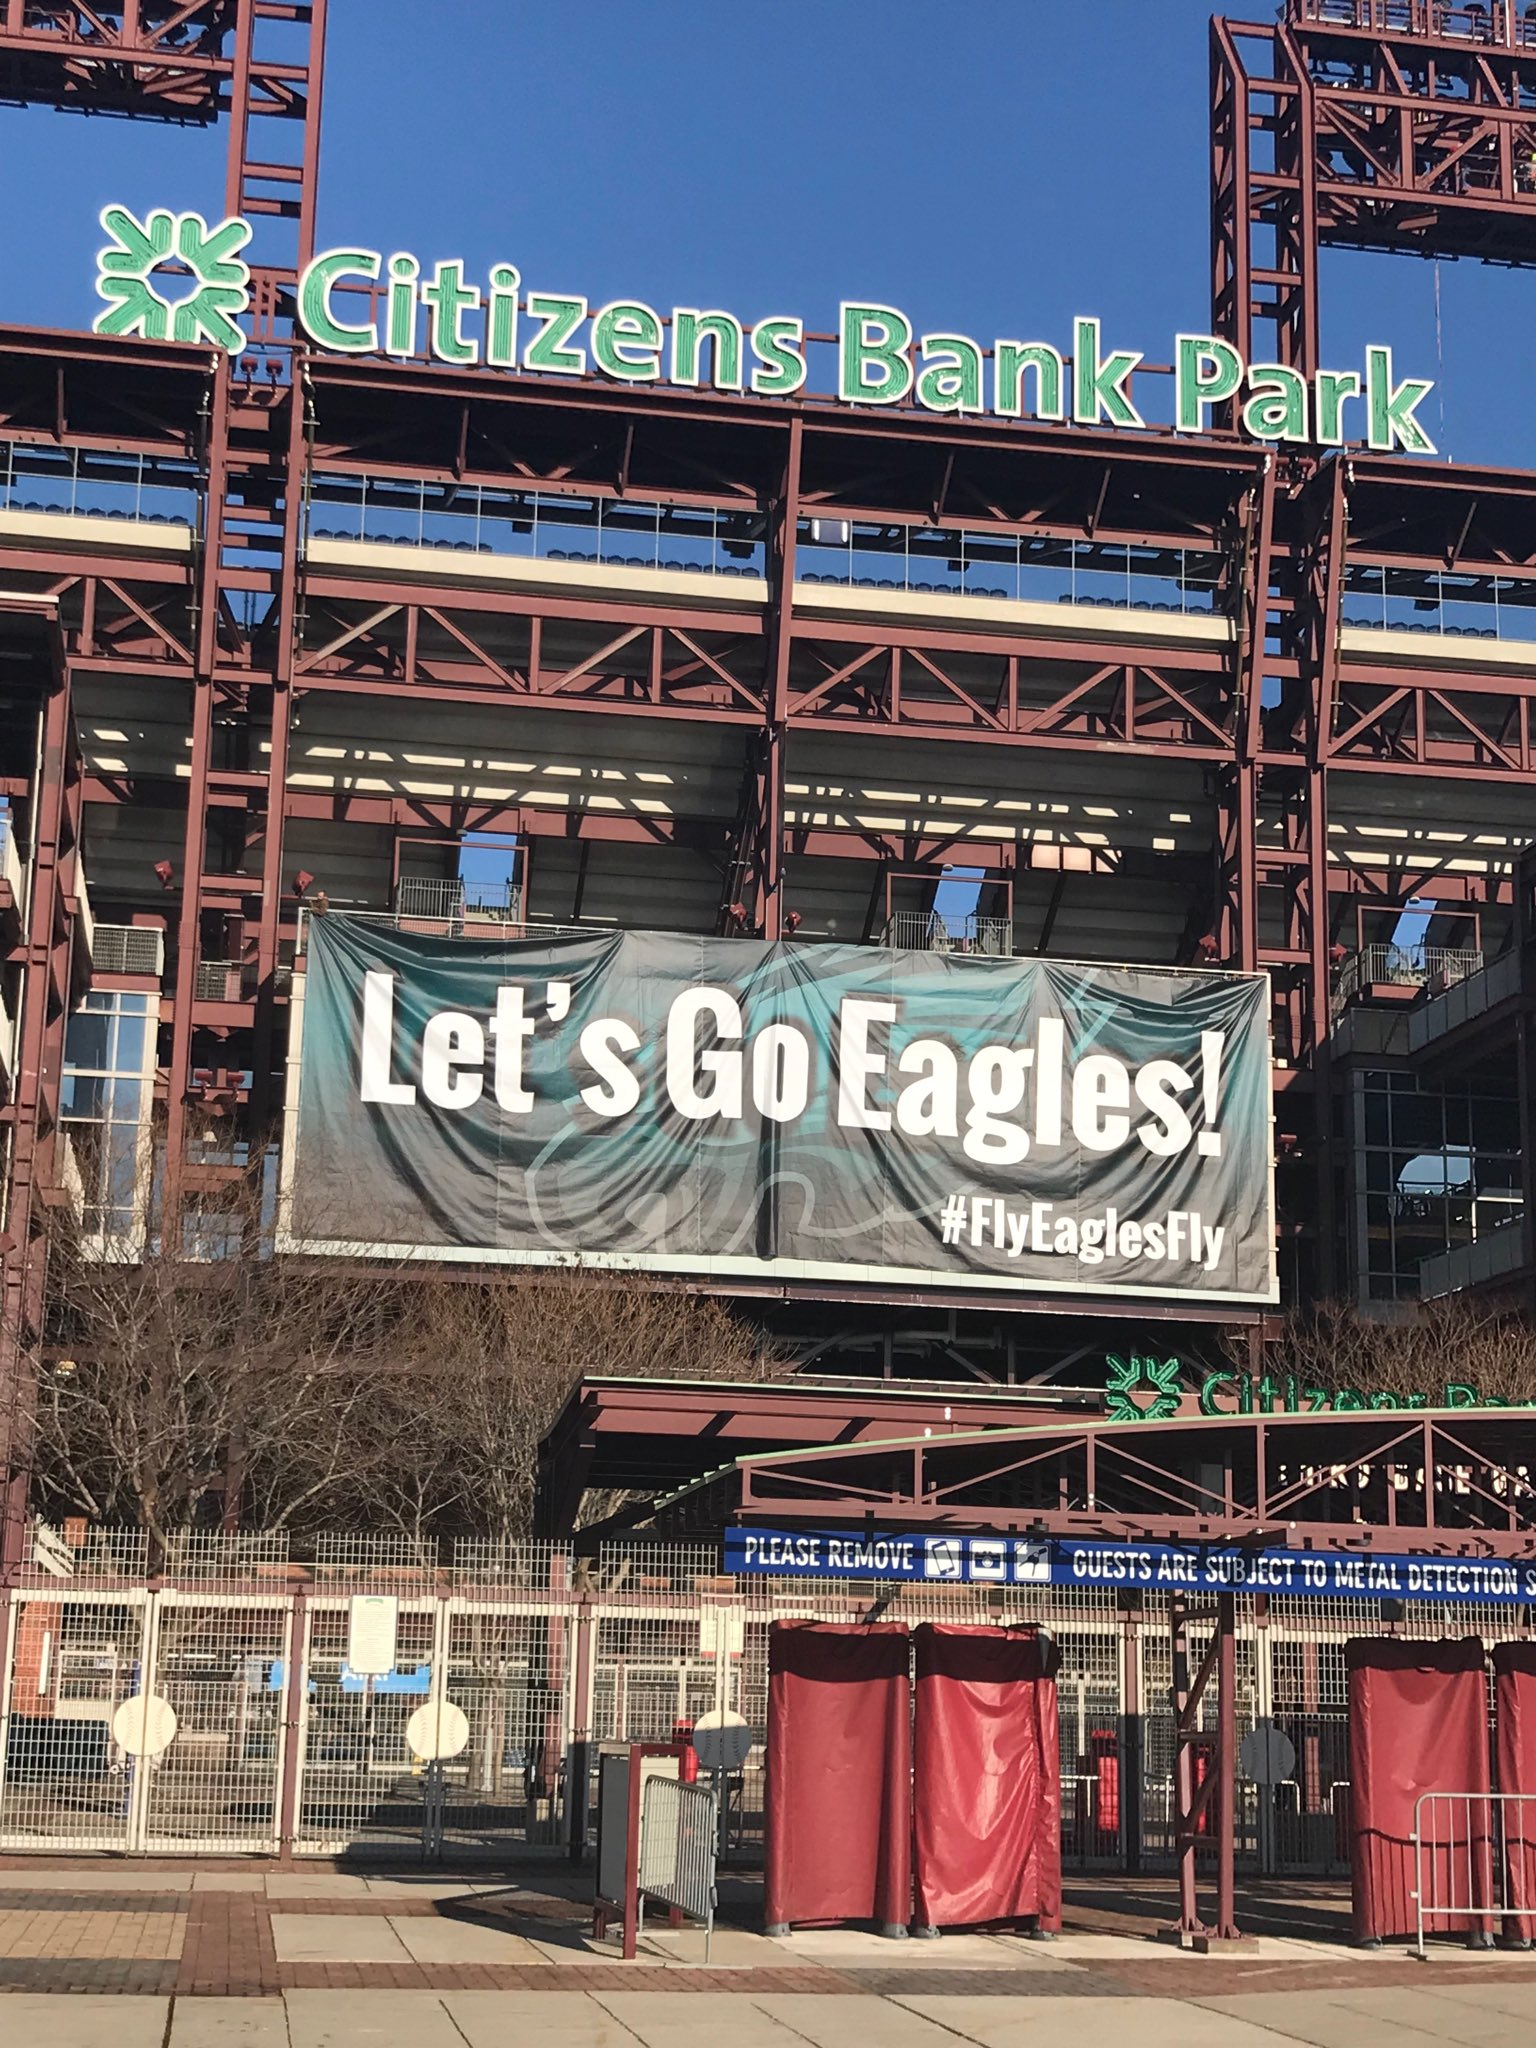 How about this for brotherly love? Well played @Phillies @NBCPhiladelphia @JClarkNBCS @Eagles #eagles #FlyEaglesFly https://t.co/UWbmCtmann